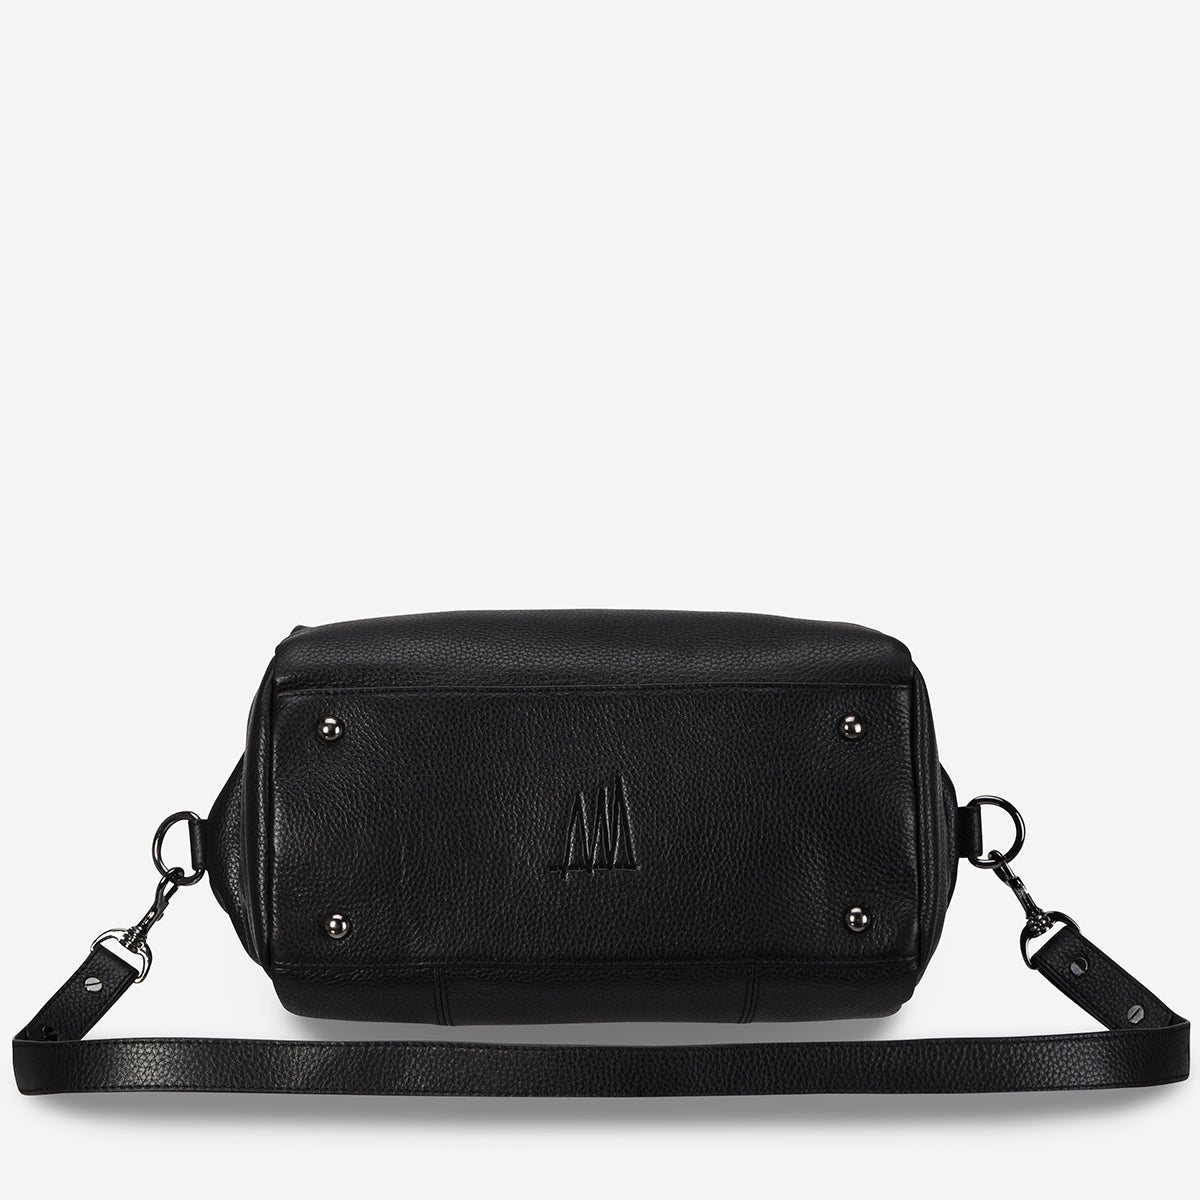 Status Anxiety Force Of Being Large Leather Bag - Black